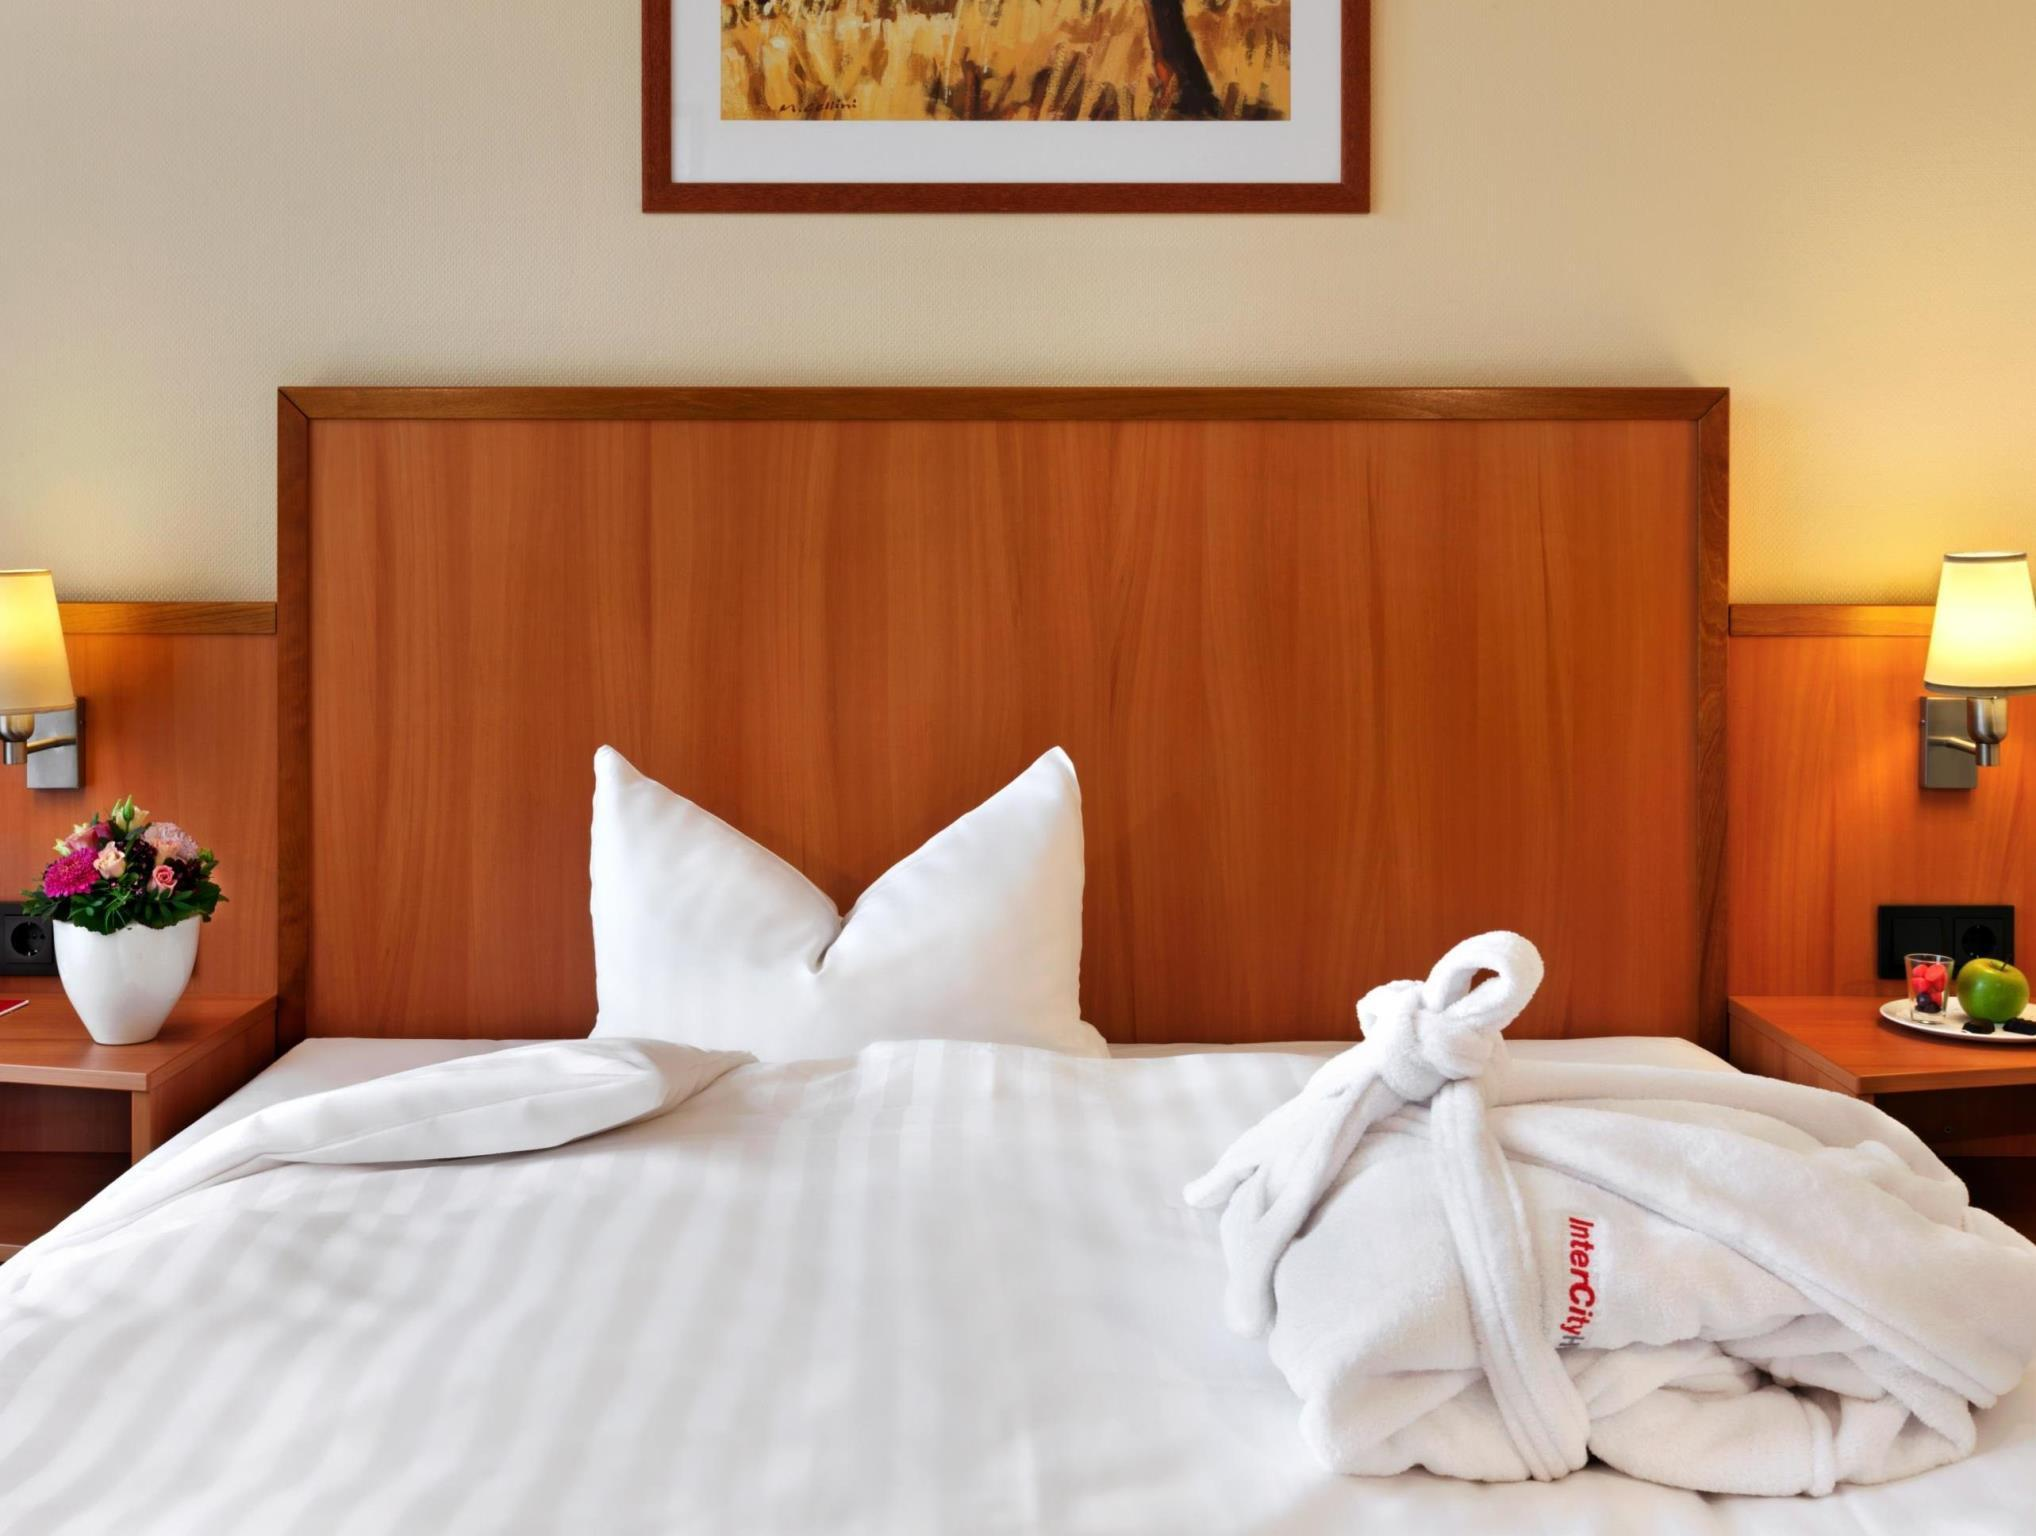 標準雙人房(1名成人) (Standard Double Room (1 Adult))